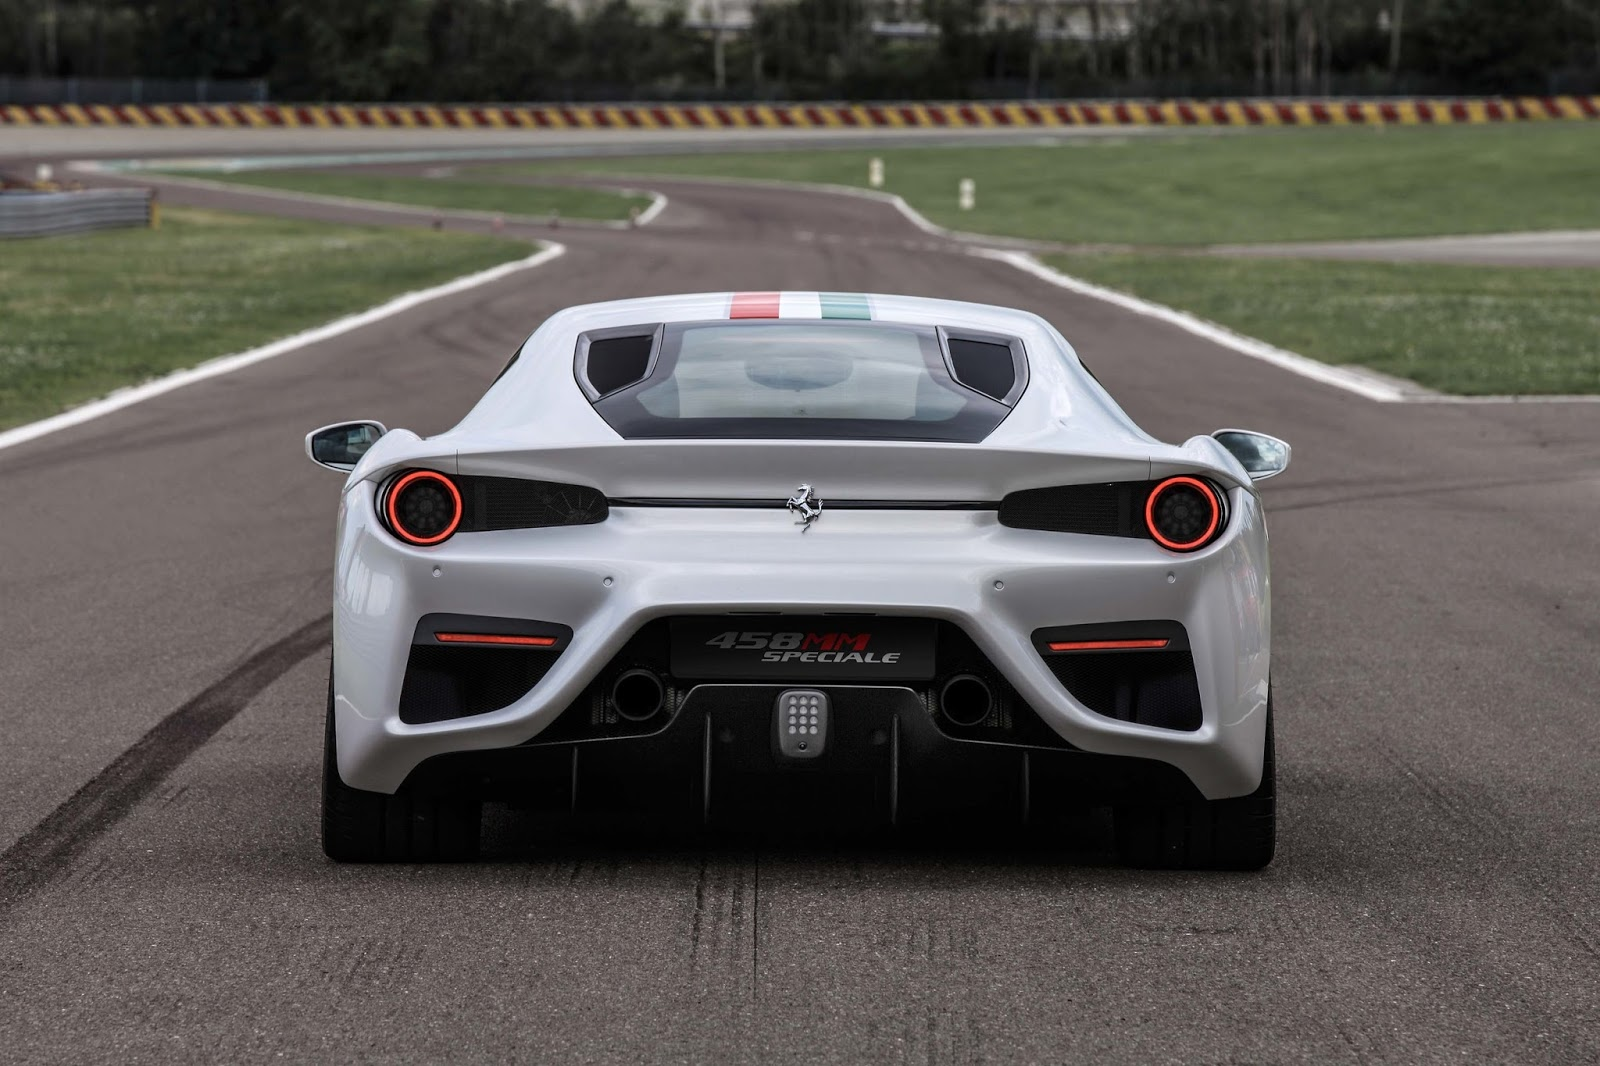 A Mm Speciale Supercar For British Wealthy Person